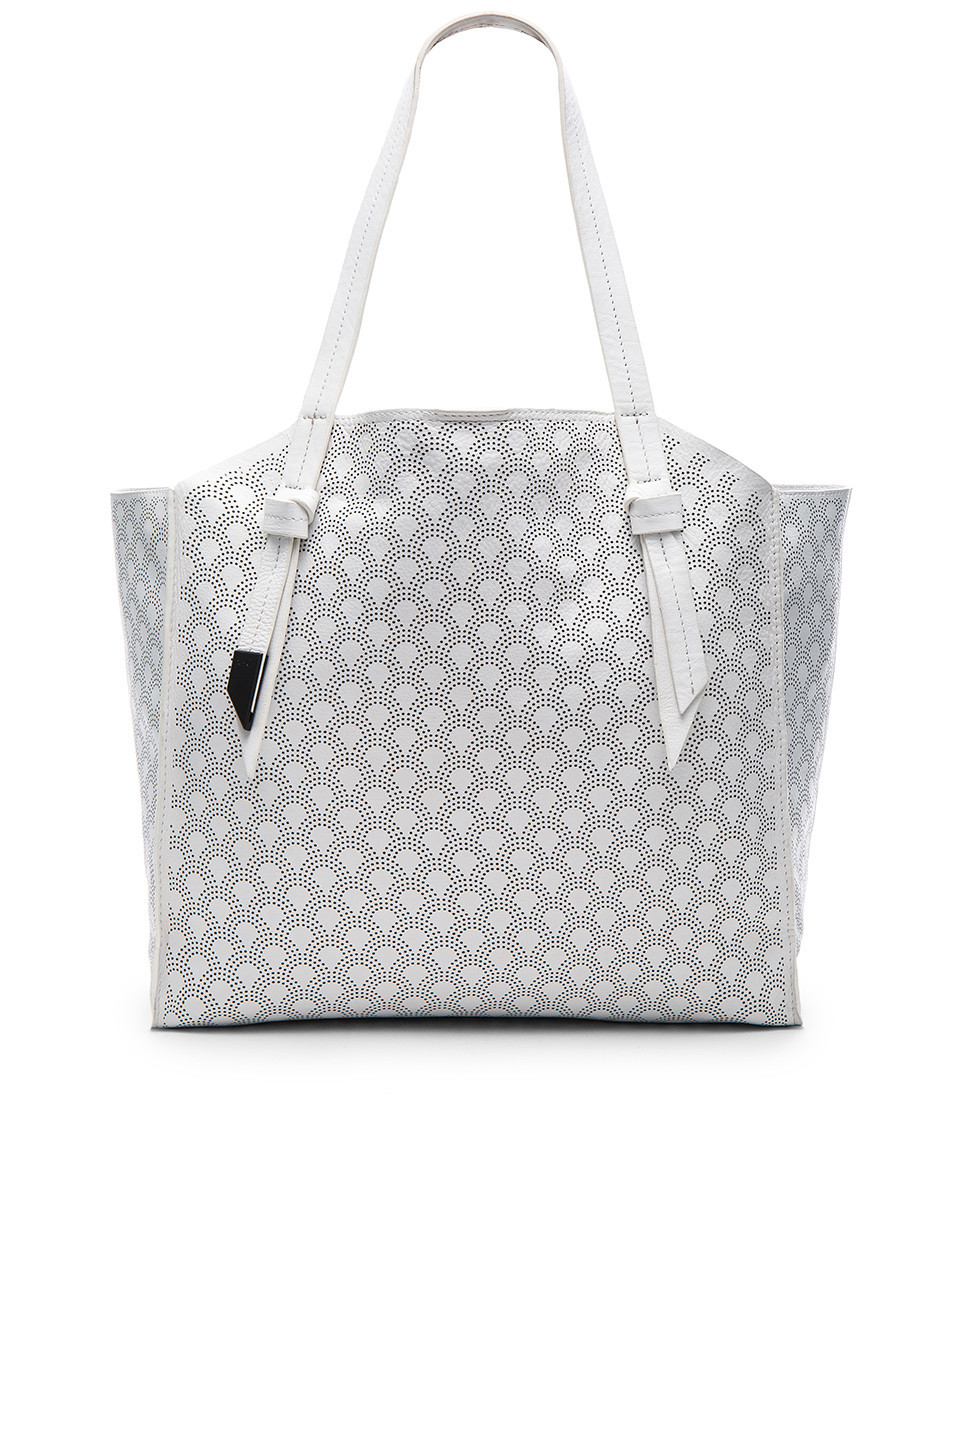 c7fdce69216a Prada Bibliothèque Watersnake-Paneled Leather Tote in white - Wheretoget